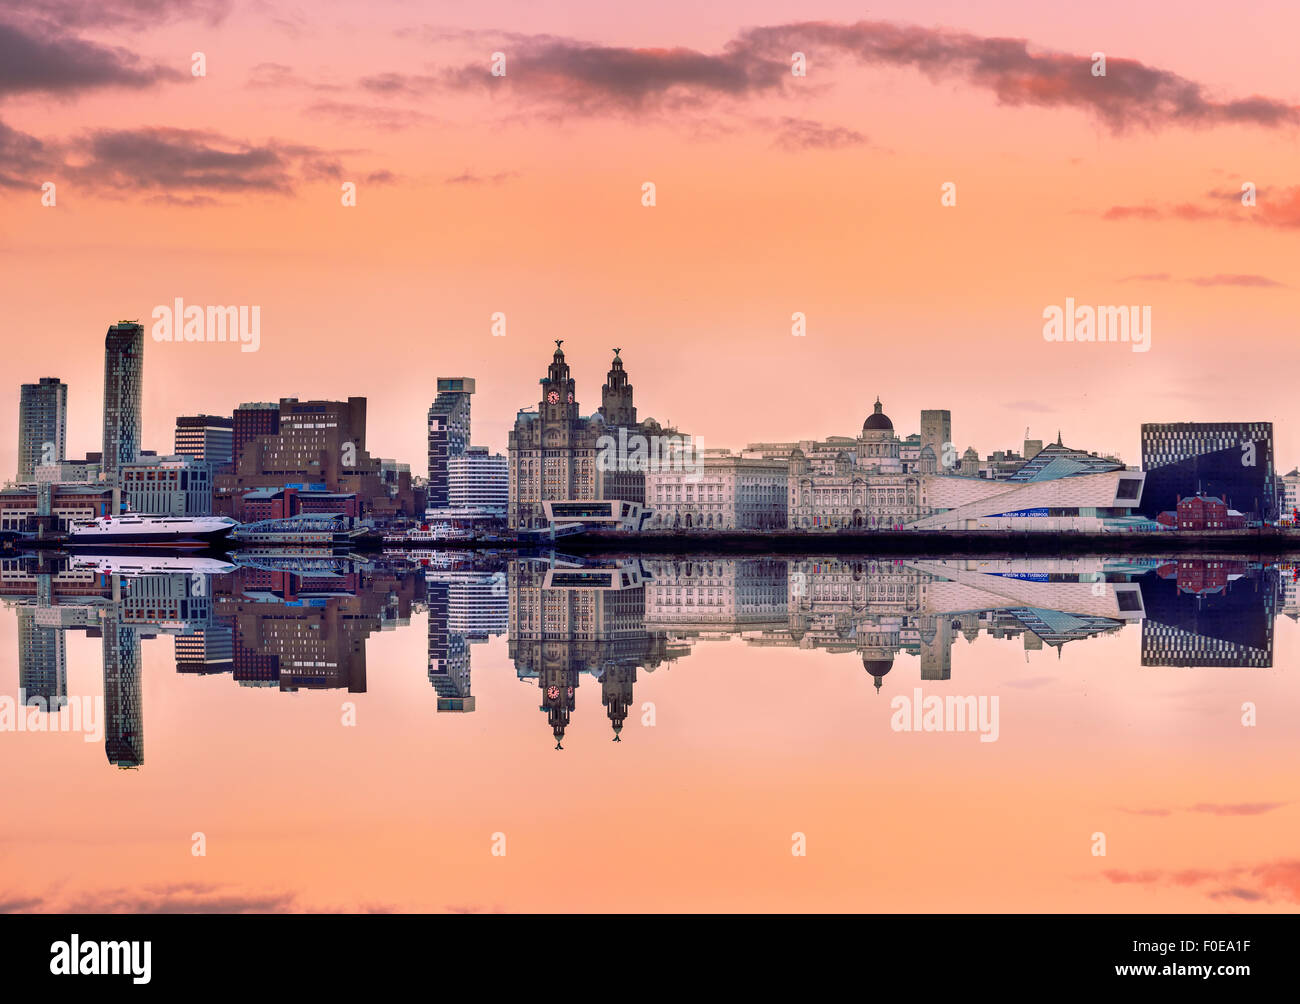 Liverpool skyline with a panoramic view of all the famous landmarks on the bank of Mersey river. - Stock Image